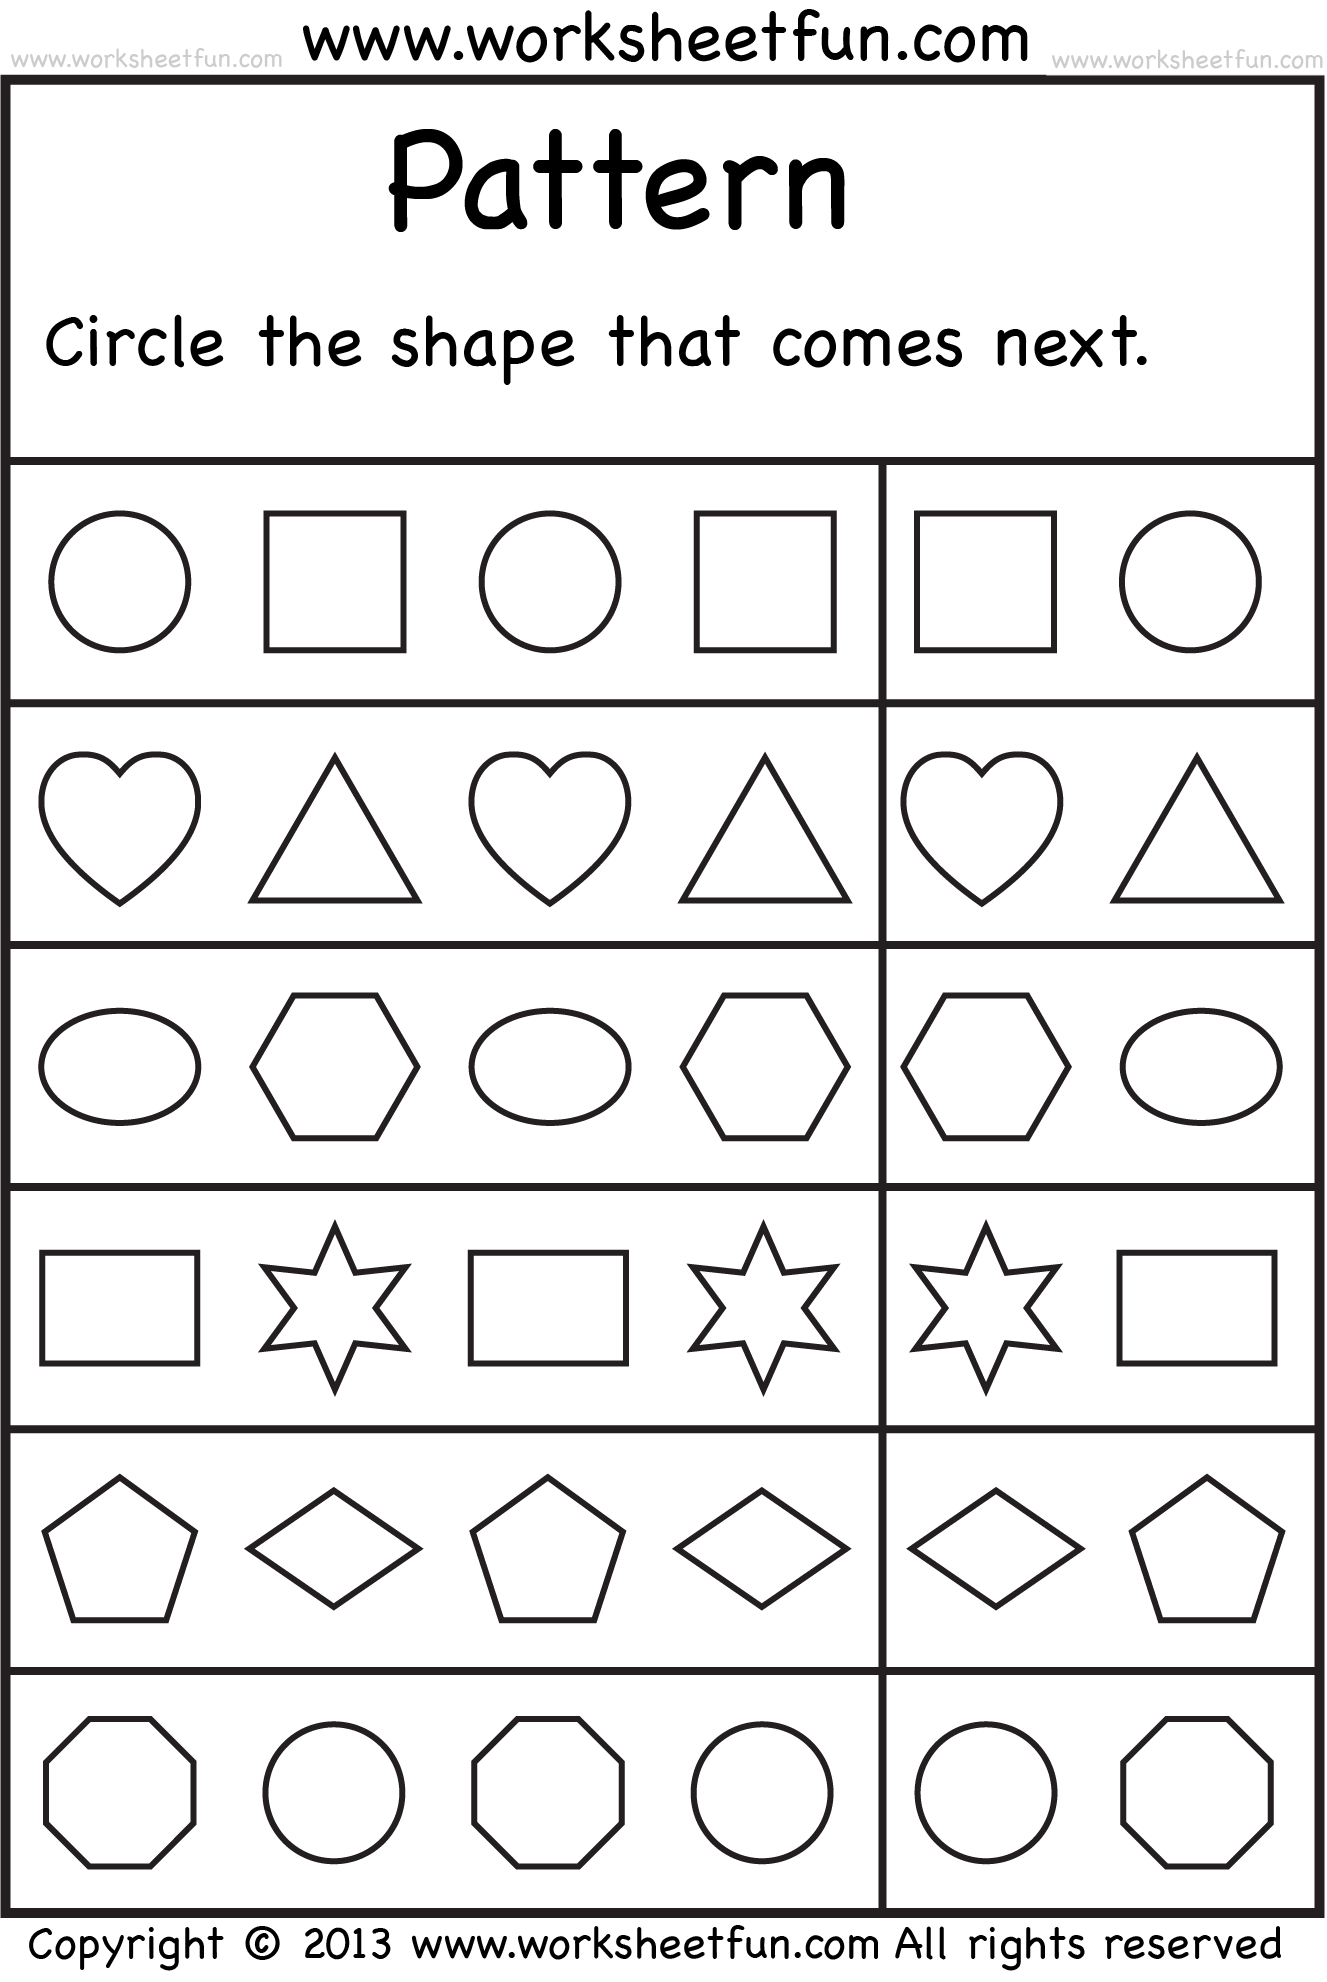 Weirdmailus  Nice  Images About School Worksheets On Pinterest  Number Words  With Goodlooking  Images About School Worksheets On Pinterest  Number Words Alphabet Worksheets And Free Printable Kindergarten Worksheets With Archaic Calculating Wages Worksheets Also Year  Maths Free Worksheets In Addition Bus Worksheet And H Worksheets For Kindergarten As Well As English Punctuation Worksheet Additionally Civil War For Kids Worksheets From Pinterestcom With Weirdmailus  Goodlooking  Images About School Worksheets On Pinterest  Number Words  With Archaic  Images About School Worksheets On Pinterest  Number Words Alphabet Worksheets And Free Printable Kindergarten Worksheets And Nice Calculating Wages Worksheets Also Year  Maths Free Worksheets In Addition Bus Worksheet From Pinterestcom